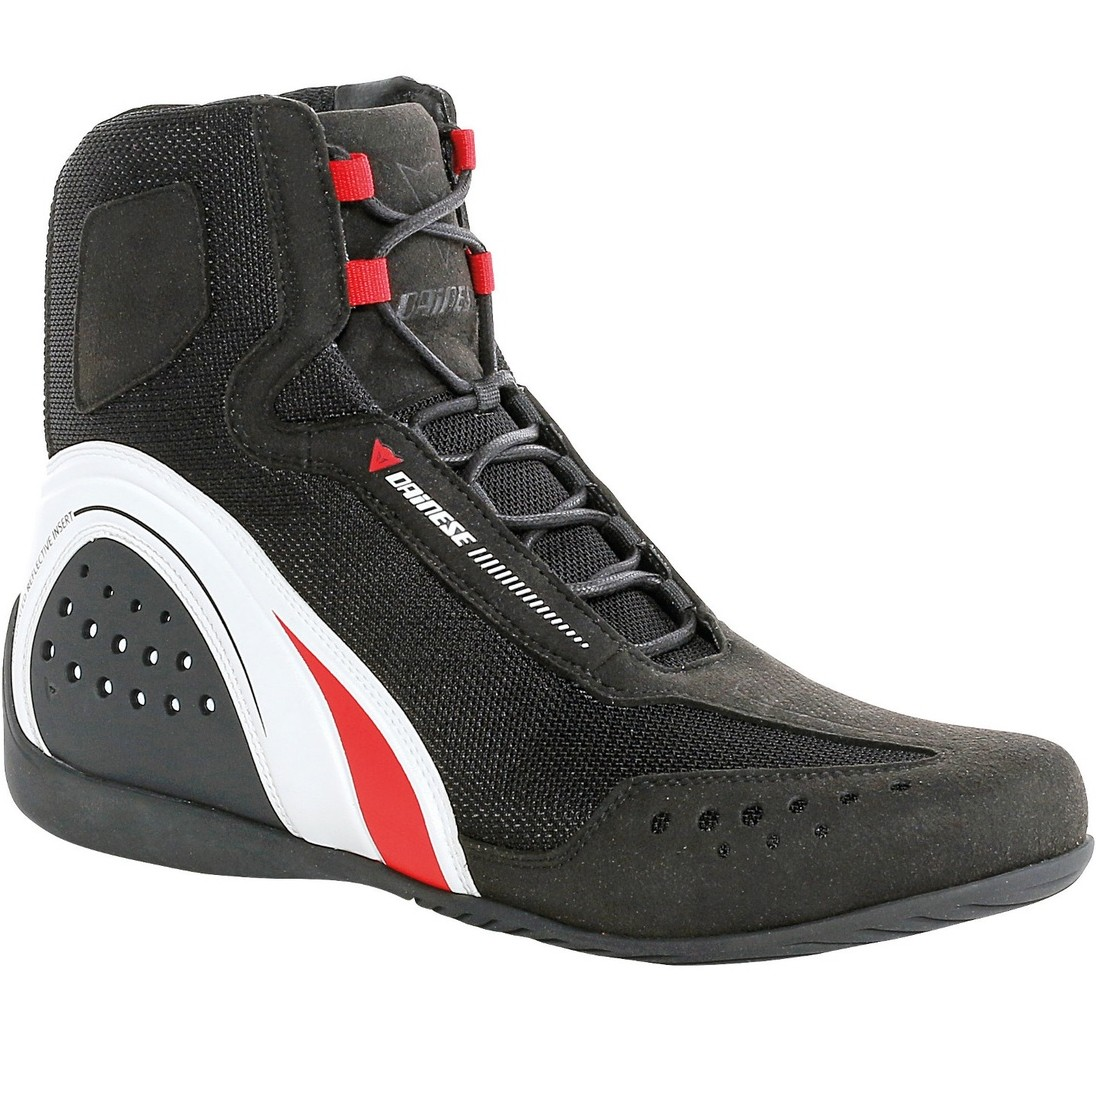 DAINESE Motorshoe Air JB Black White Red Boots